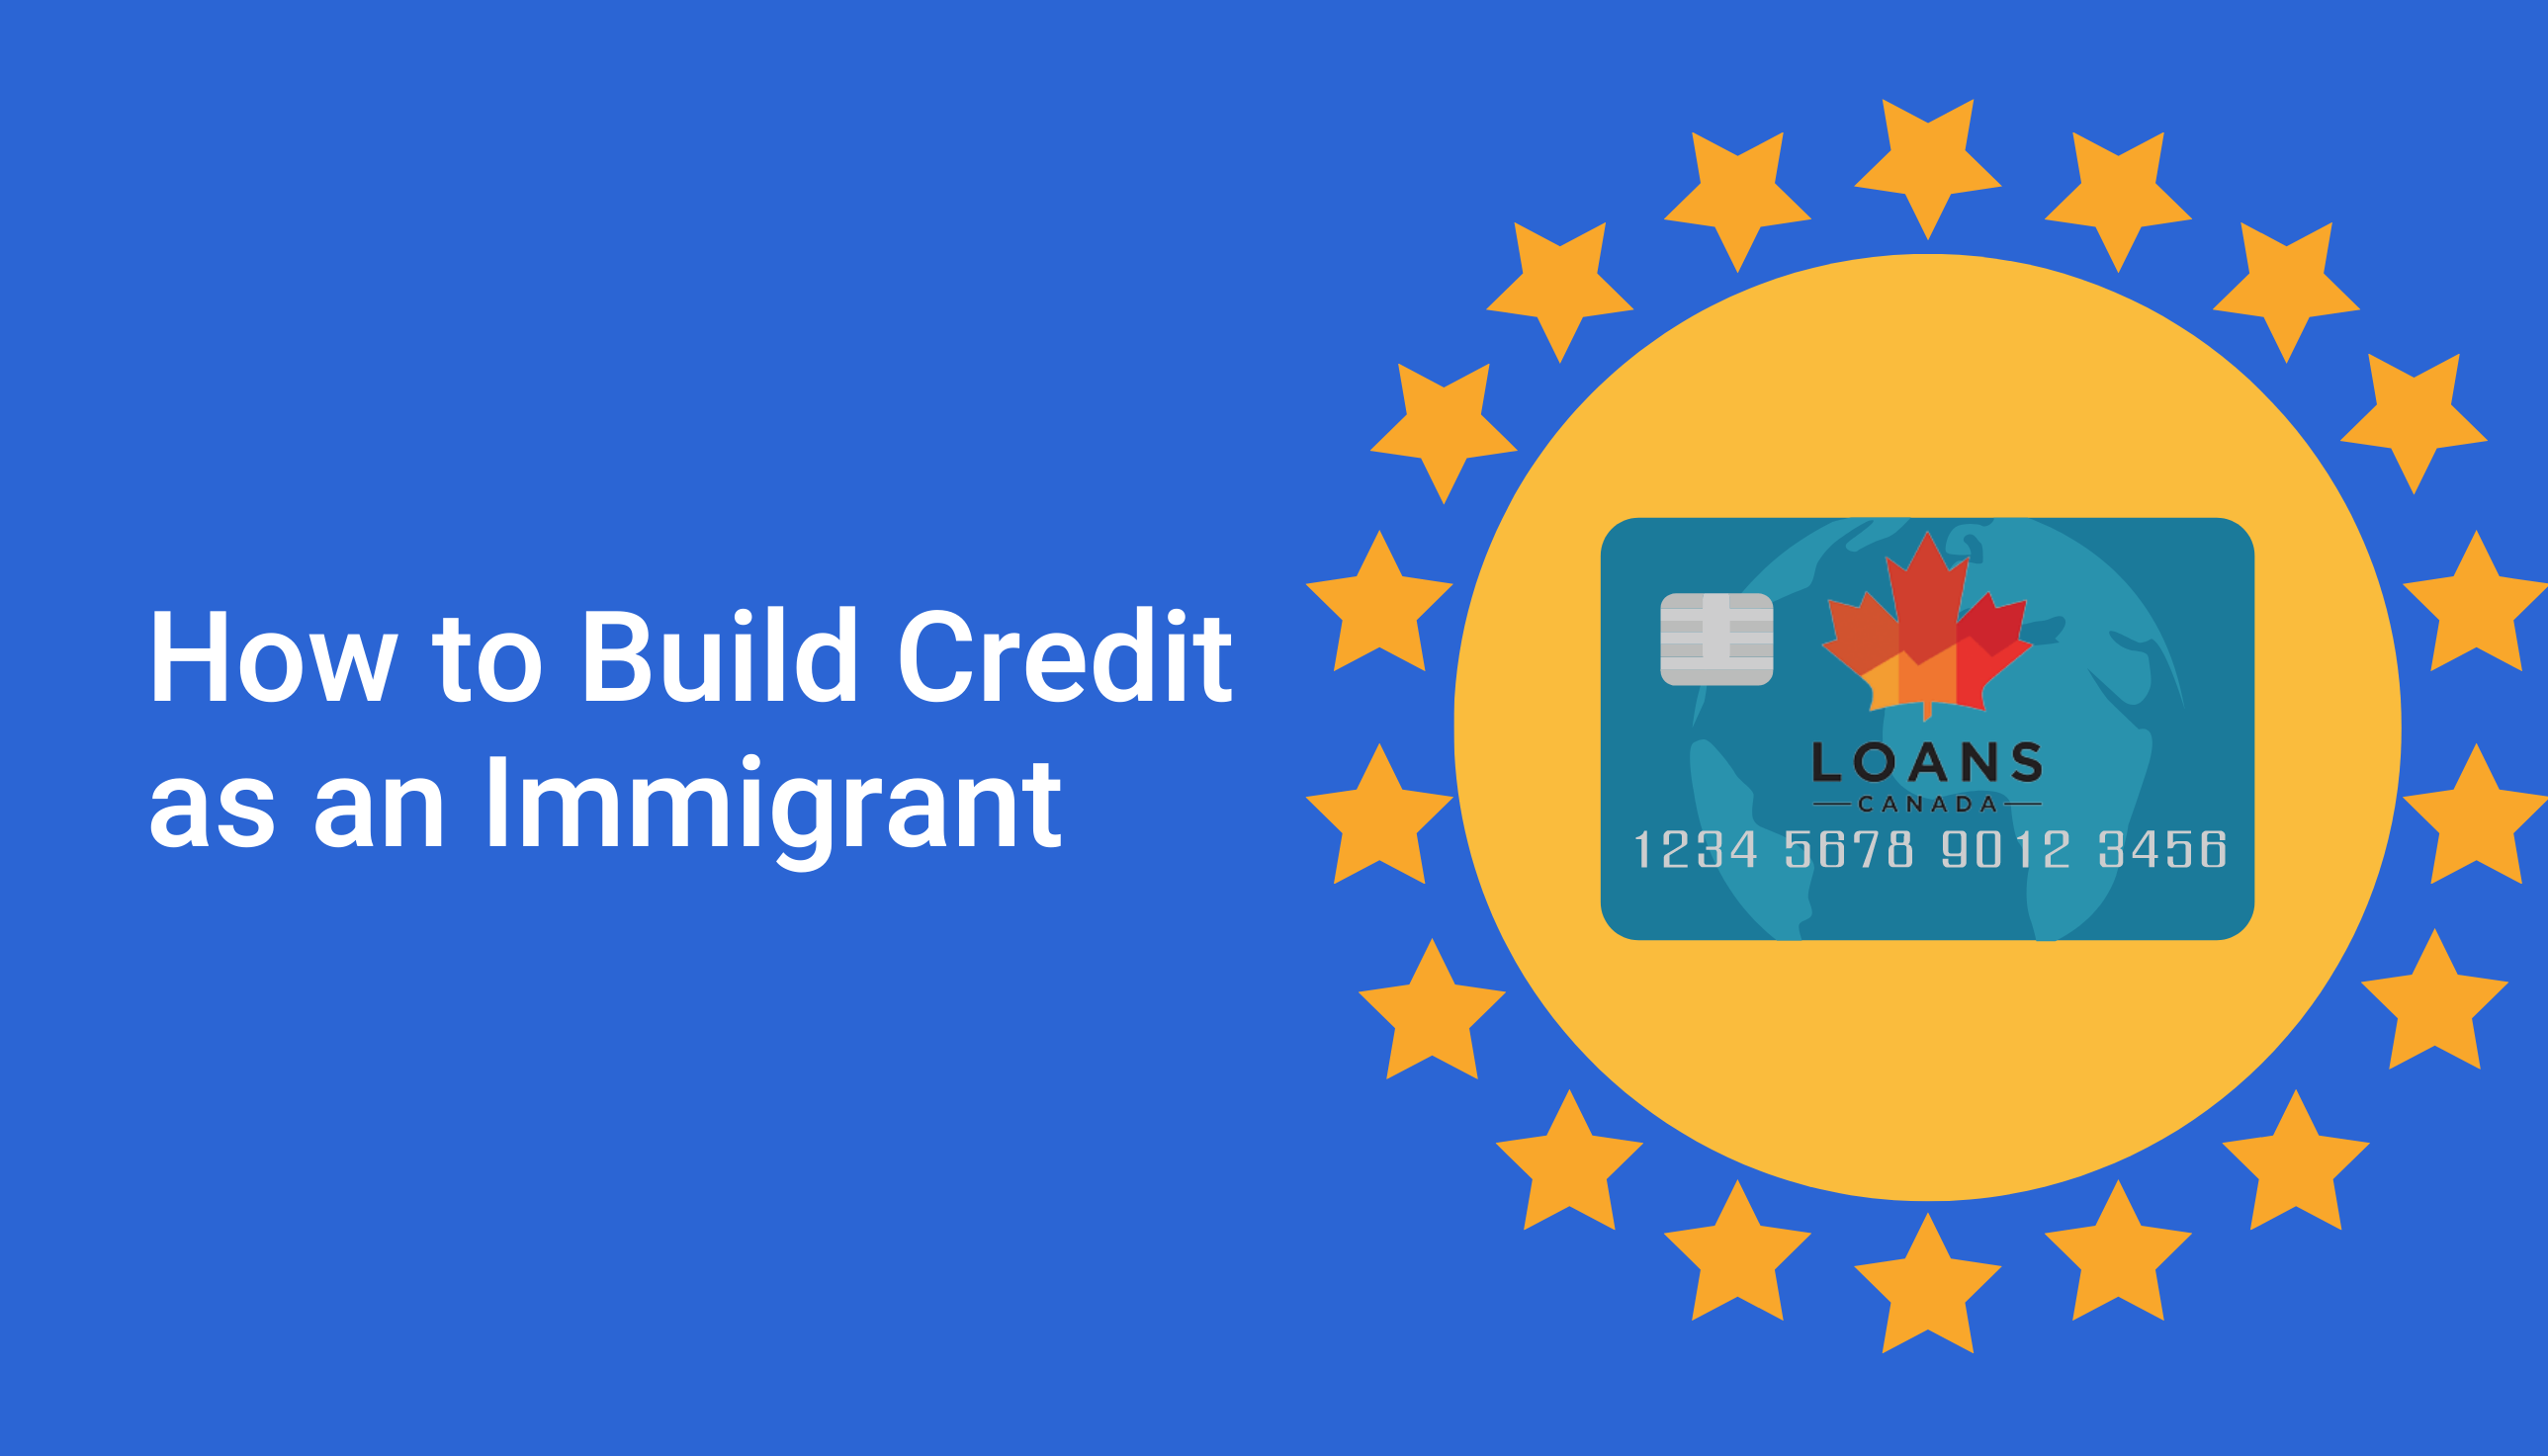 How to Build Credit as an Immigrant